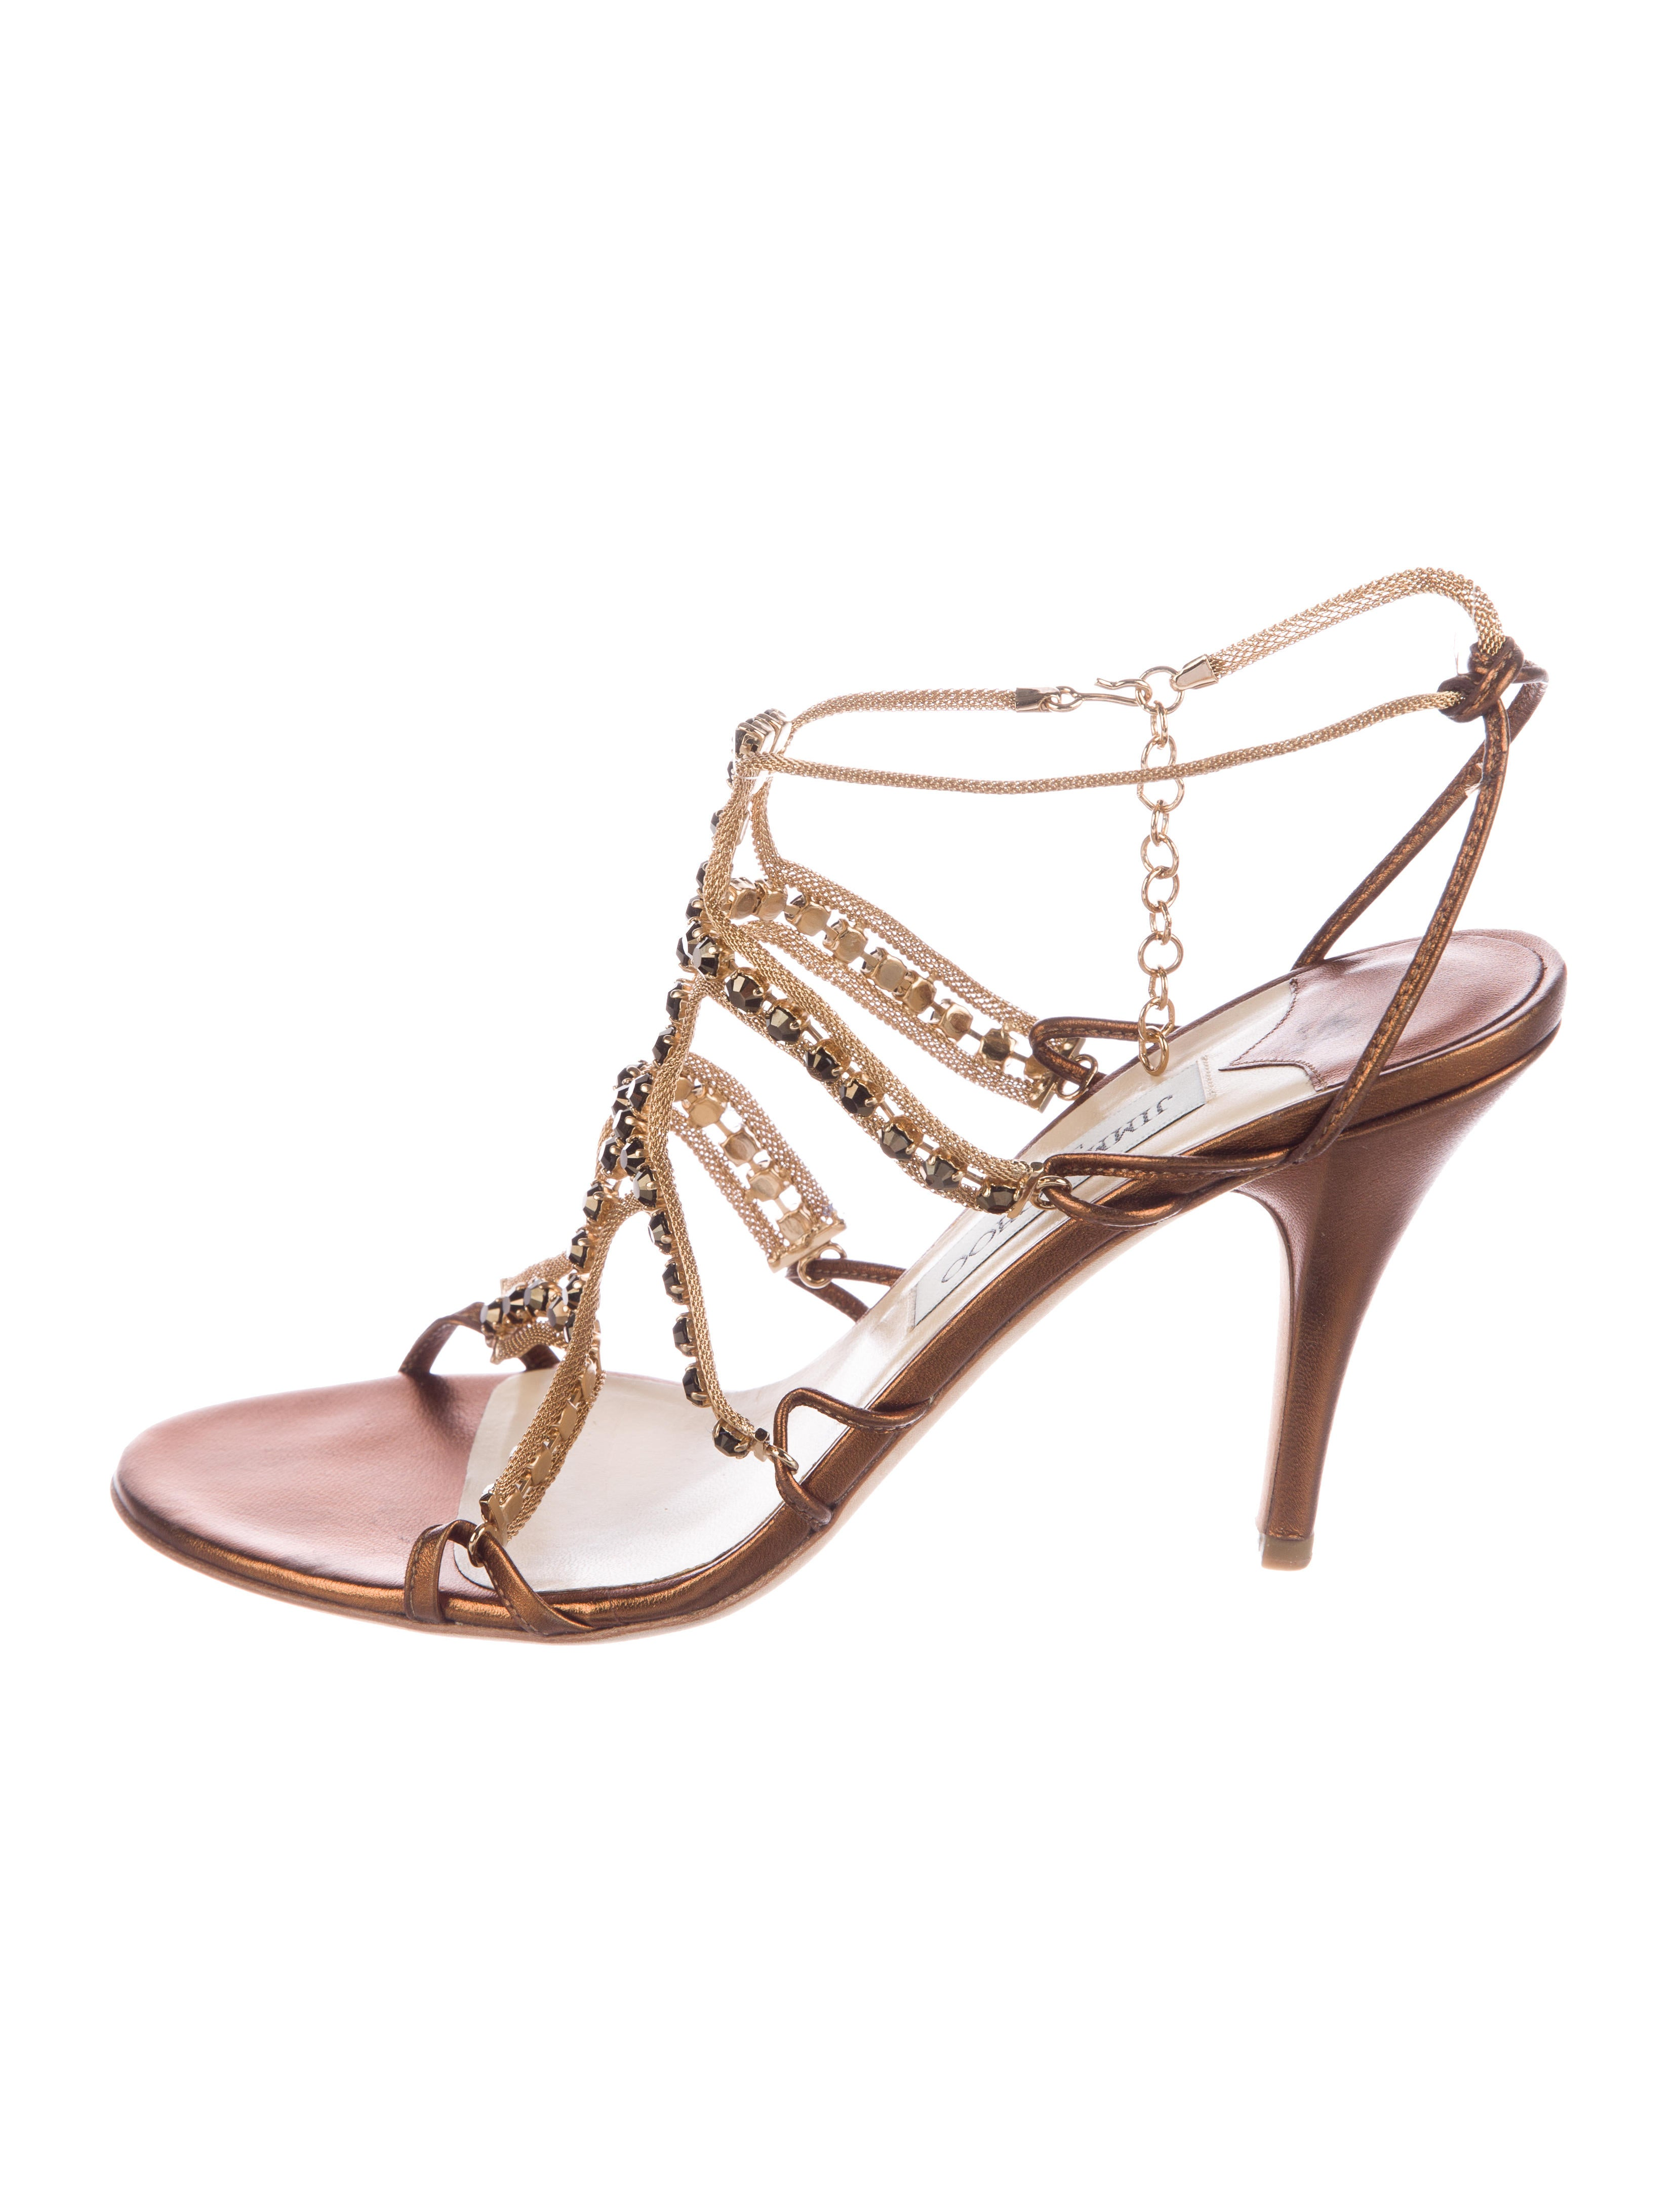 Jimmy Choo Jewel-Embellished Cage Sandals buy cheap shop really for sale sale 2015 new sale pay with paypal CgOWrOzfm